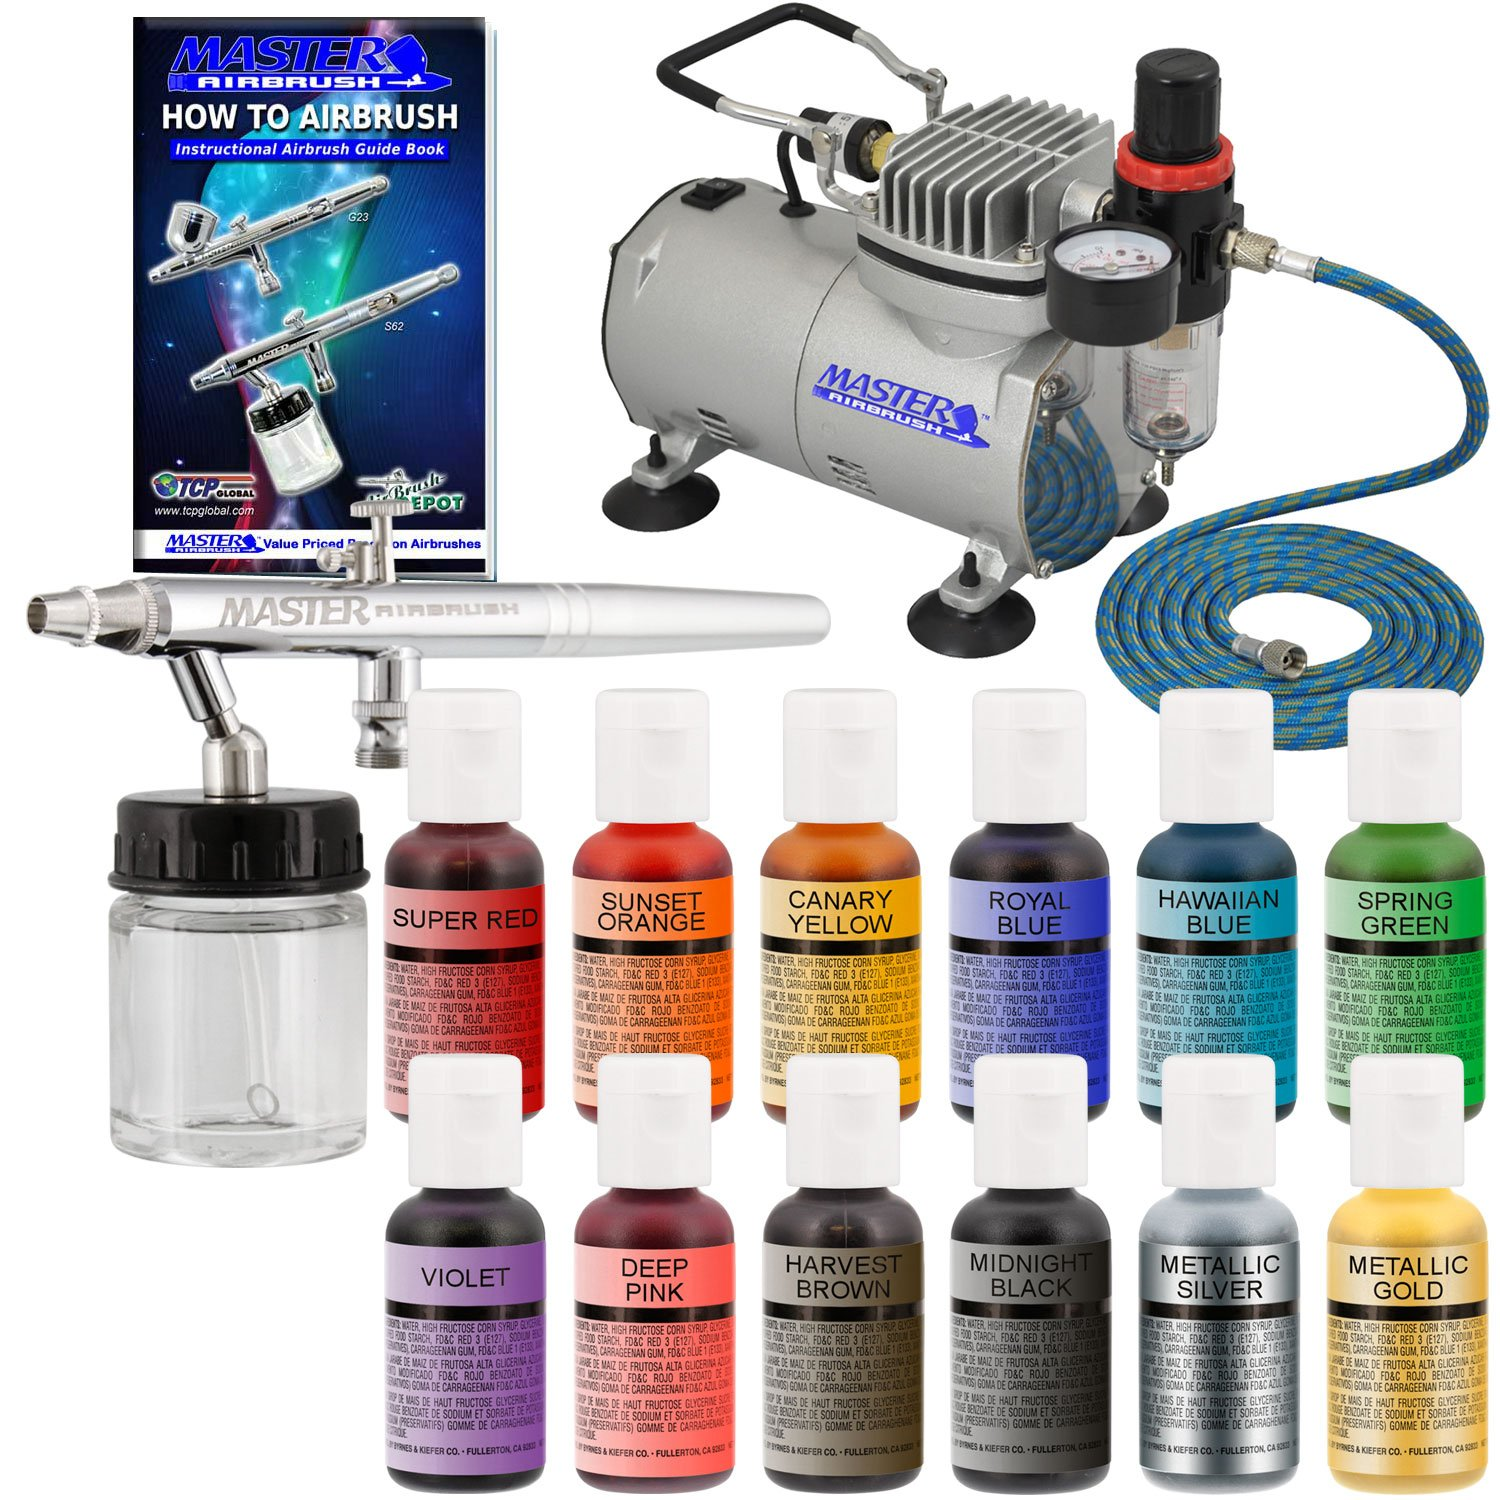 Master Airbrush Cake Decorating Airbrushing System Kit with a Set of 12 Chefmaster Food Coloring Colors, S68 Siphon Feed Dual-Action Airbrush, Air Compressor, Hose and How-To-Airbrush Guide Booklet